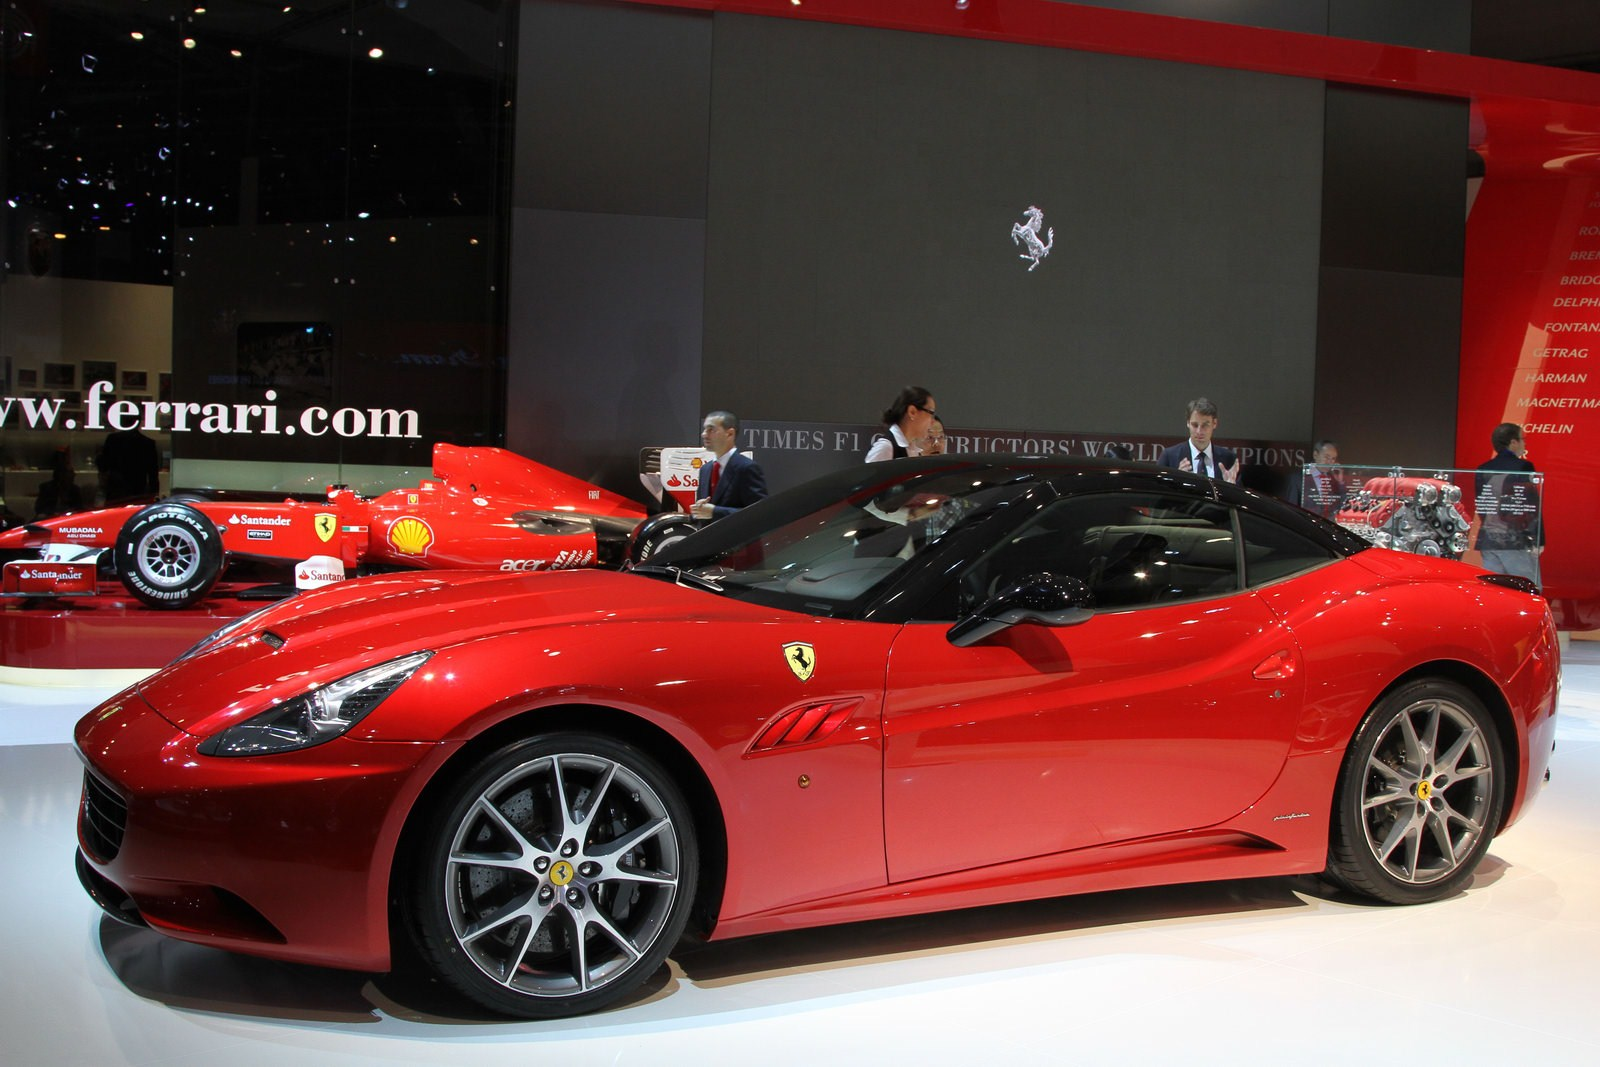 Cars Wallpapers 2014 Hd Download 2014 Ferrari California Car Review Car Wallpaper